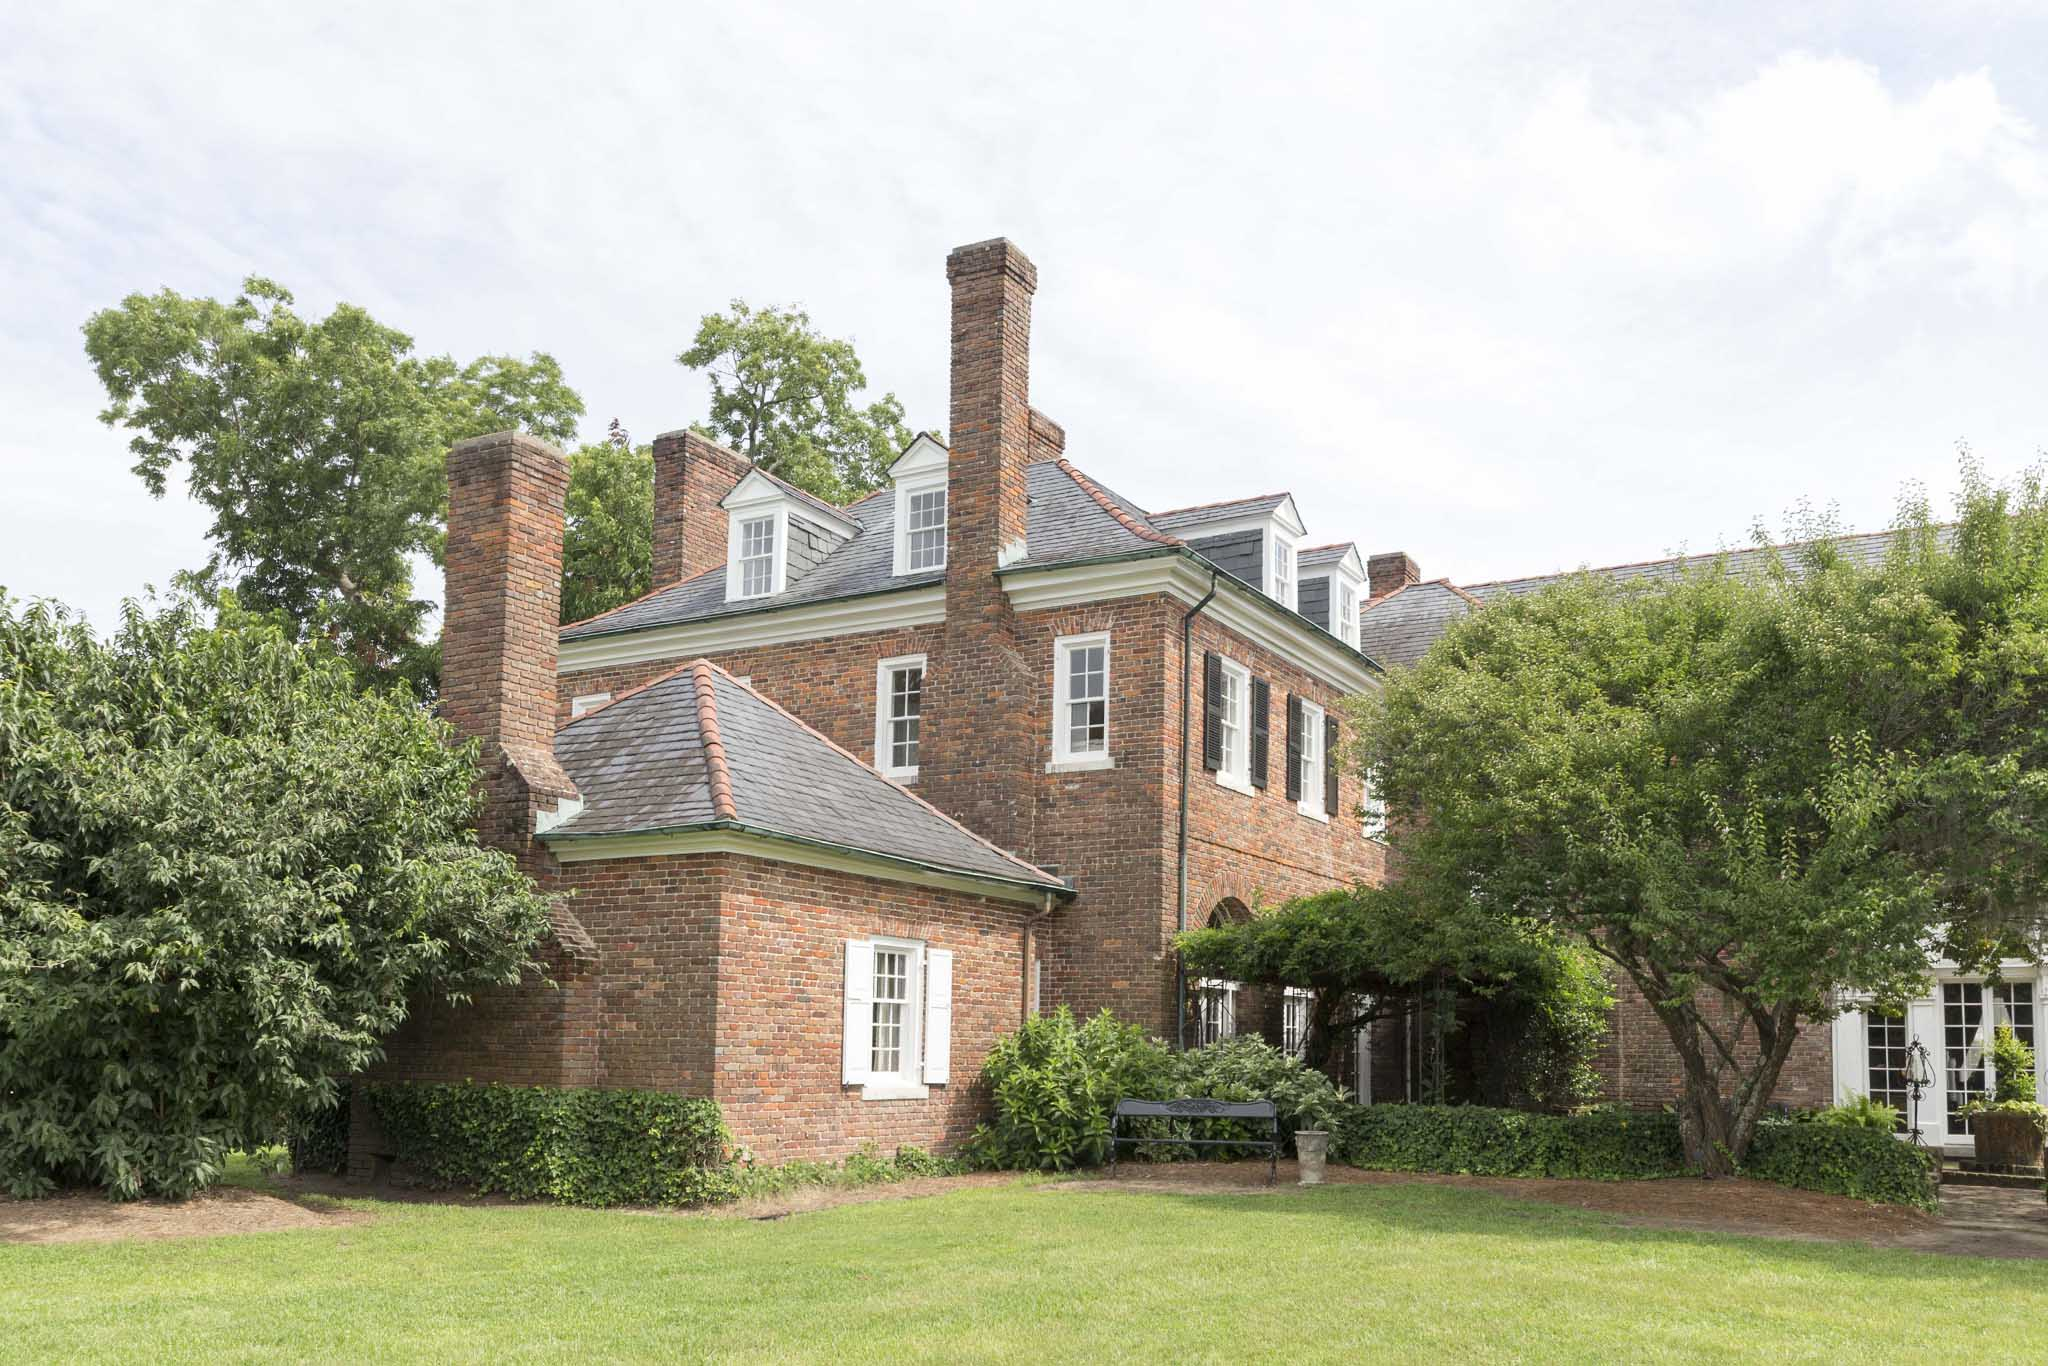 Boon Hall Plantation